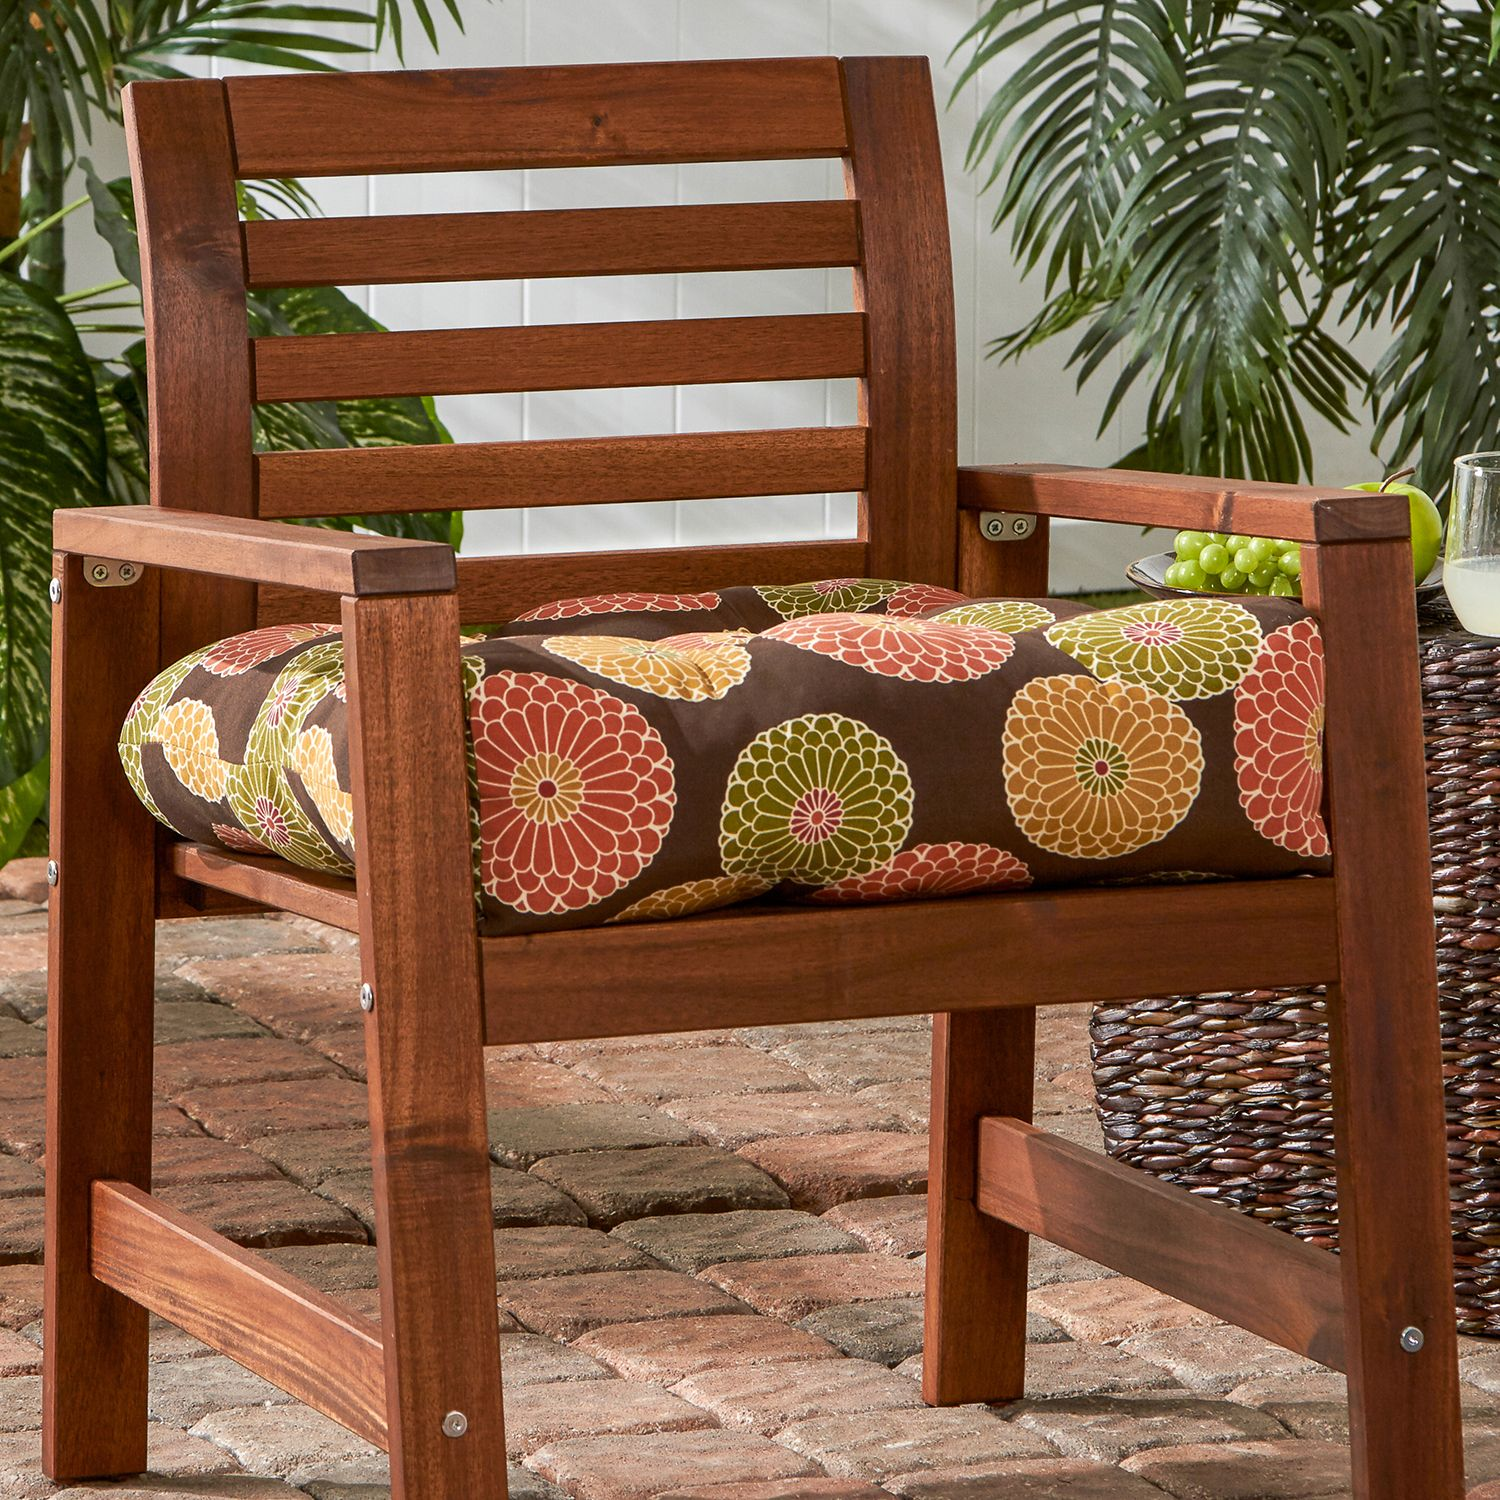 greendale home fashions outdoor sunbrella dining chair cushion